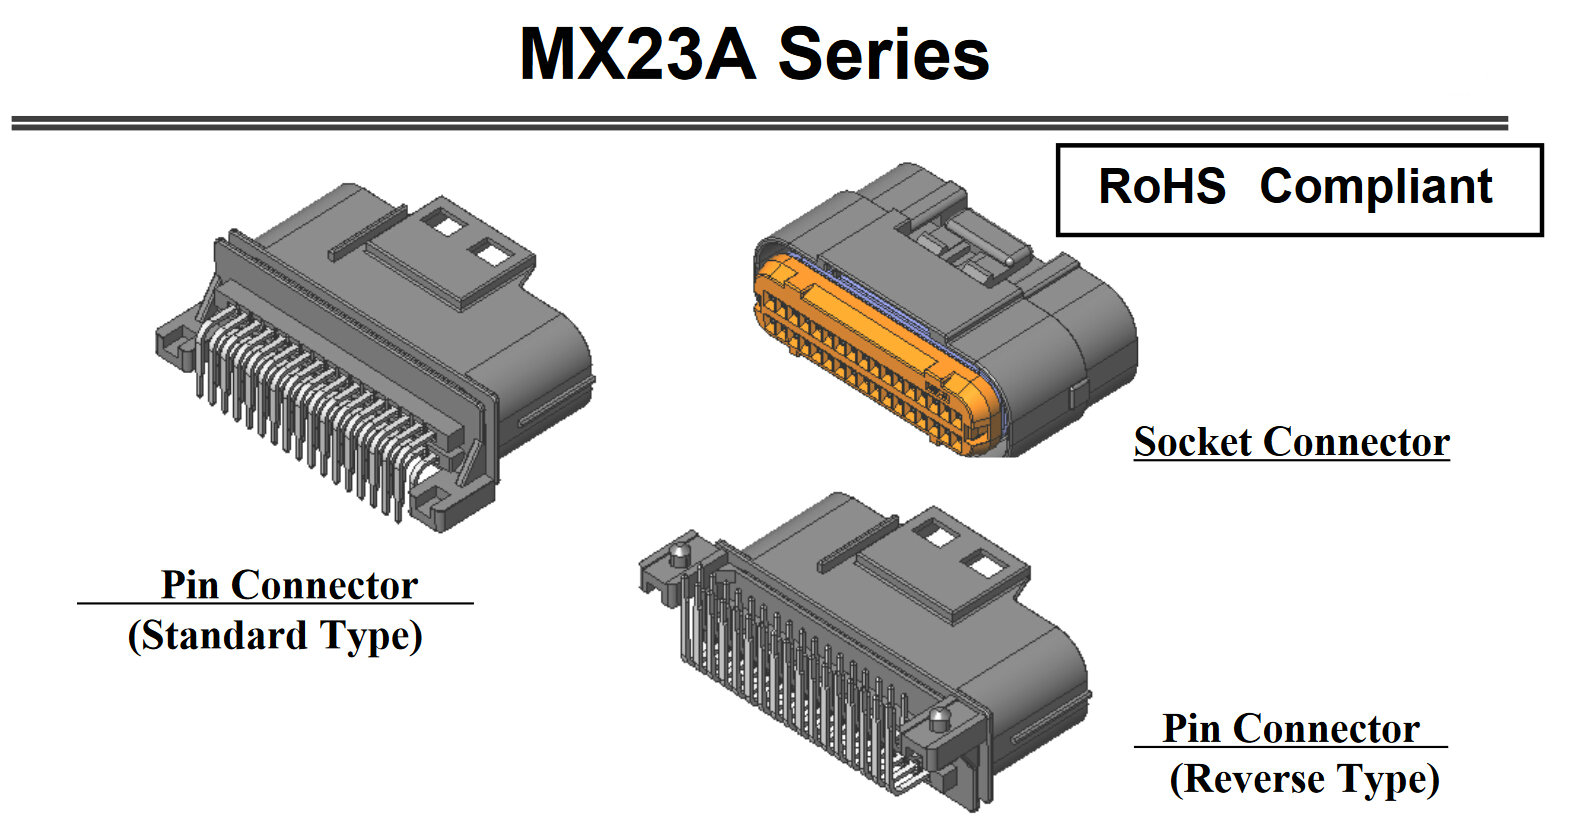 MX23A connector